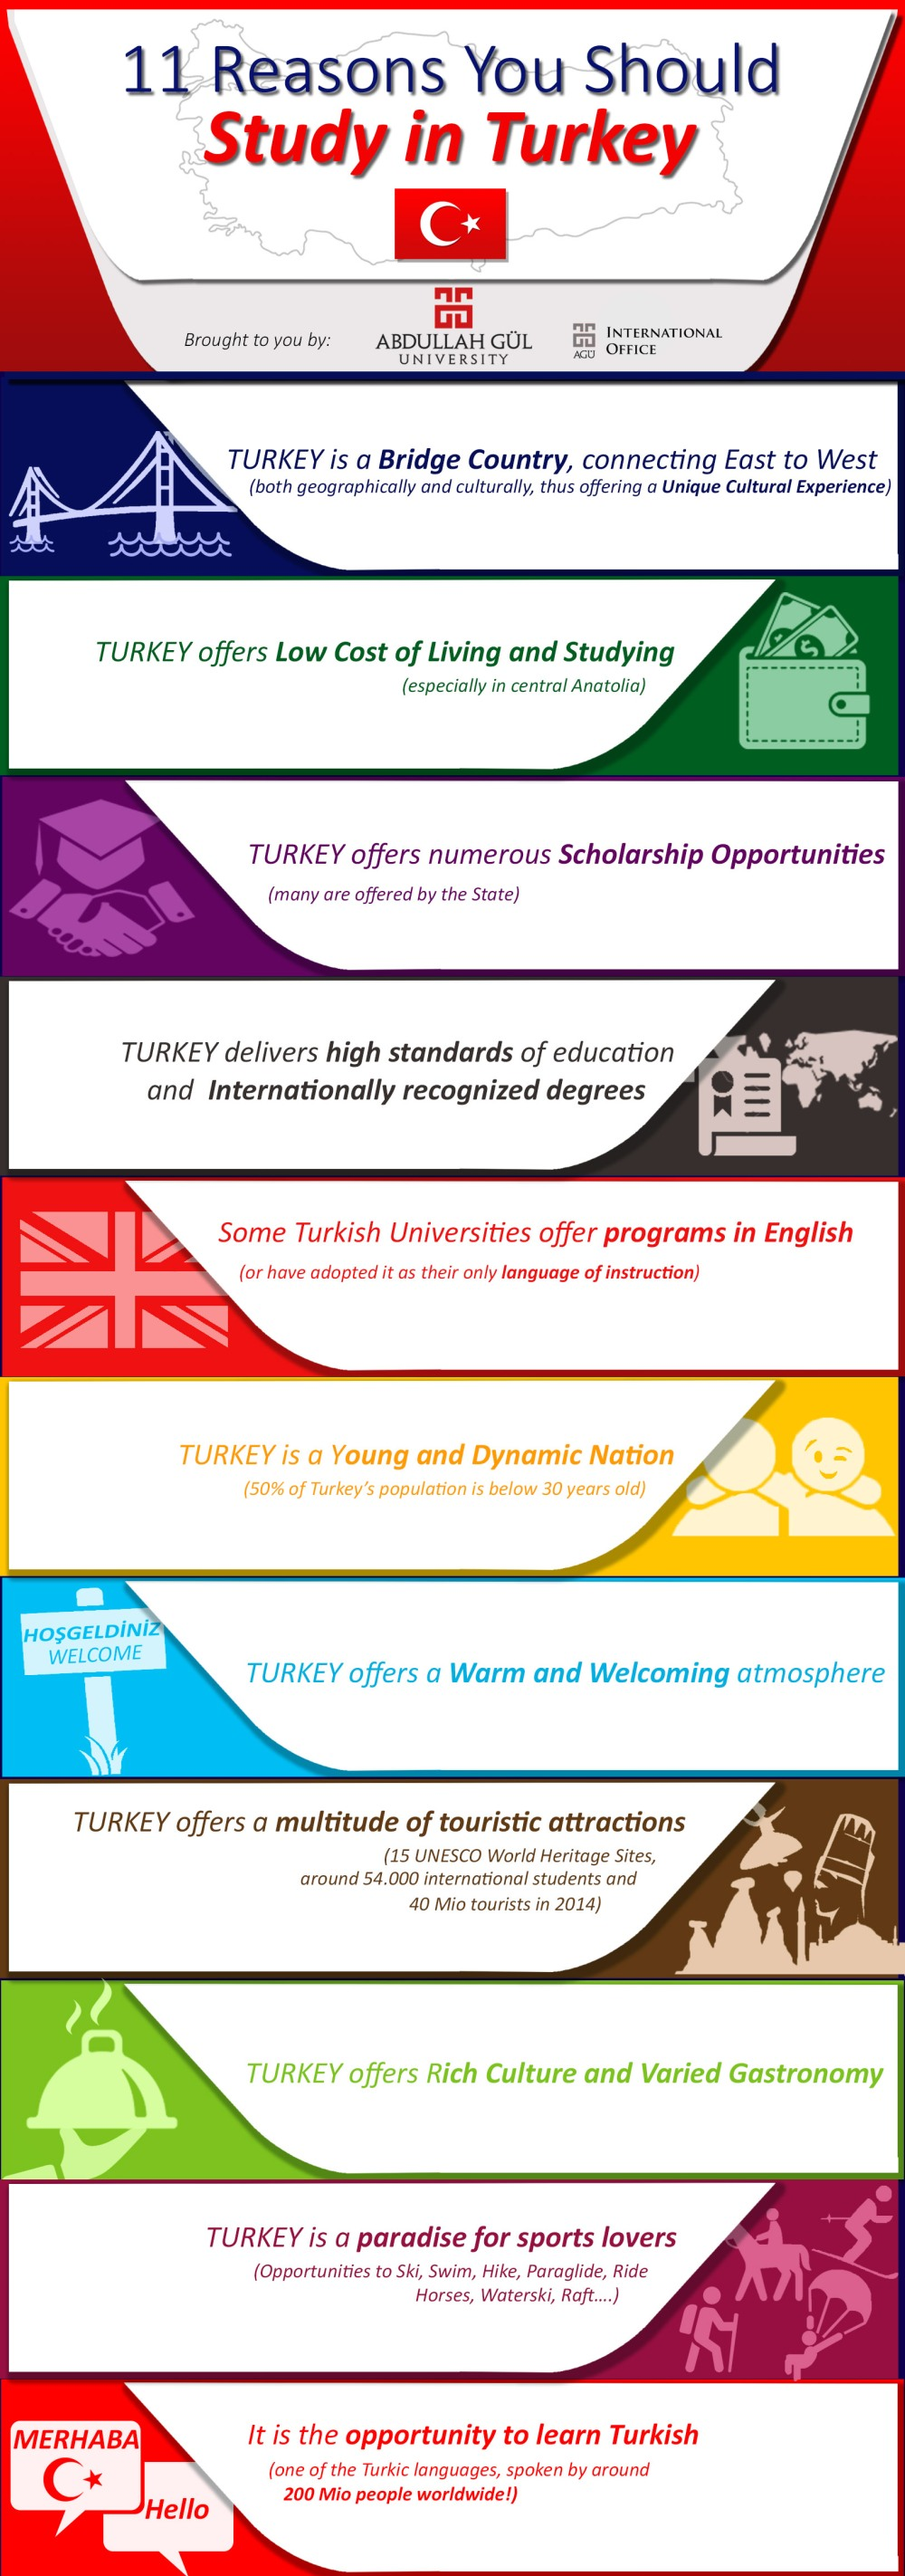 Abdullah Gül University, AGU, why Turkey, Study in Turkey, Advantages, International Office, Gastronomy, Tourism, Low Cost, Welcome, Learn Turkish, High Quality Education, Internationally Recognized Degrees, Scholarships, Sports, Programs in English